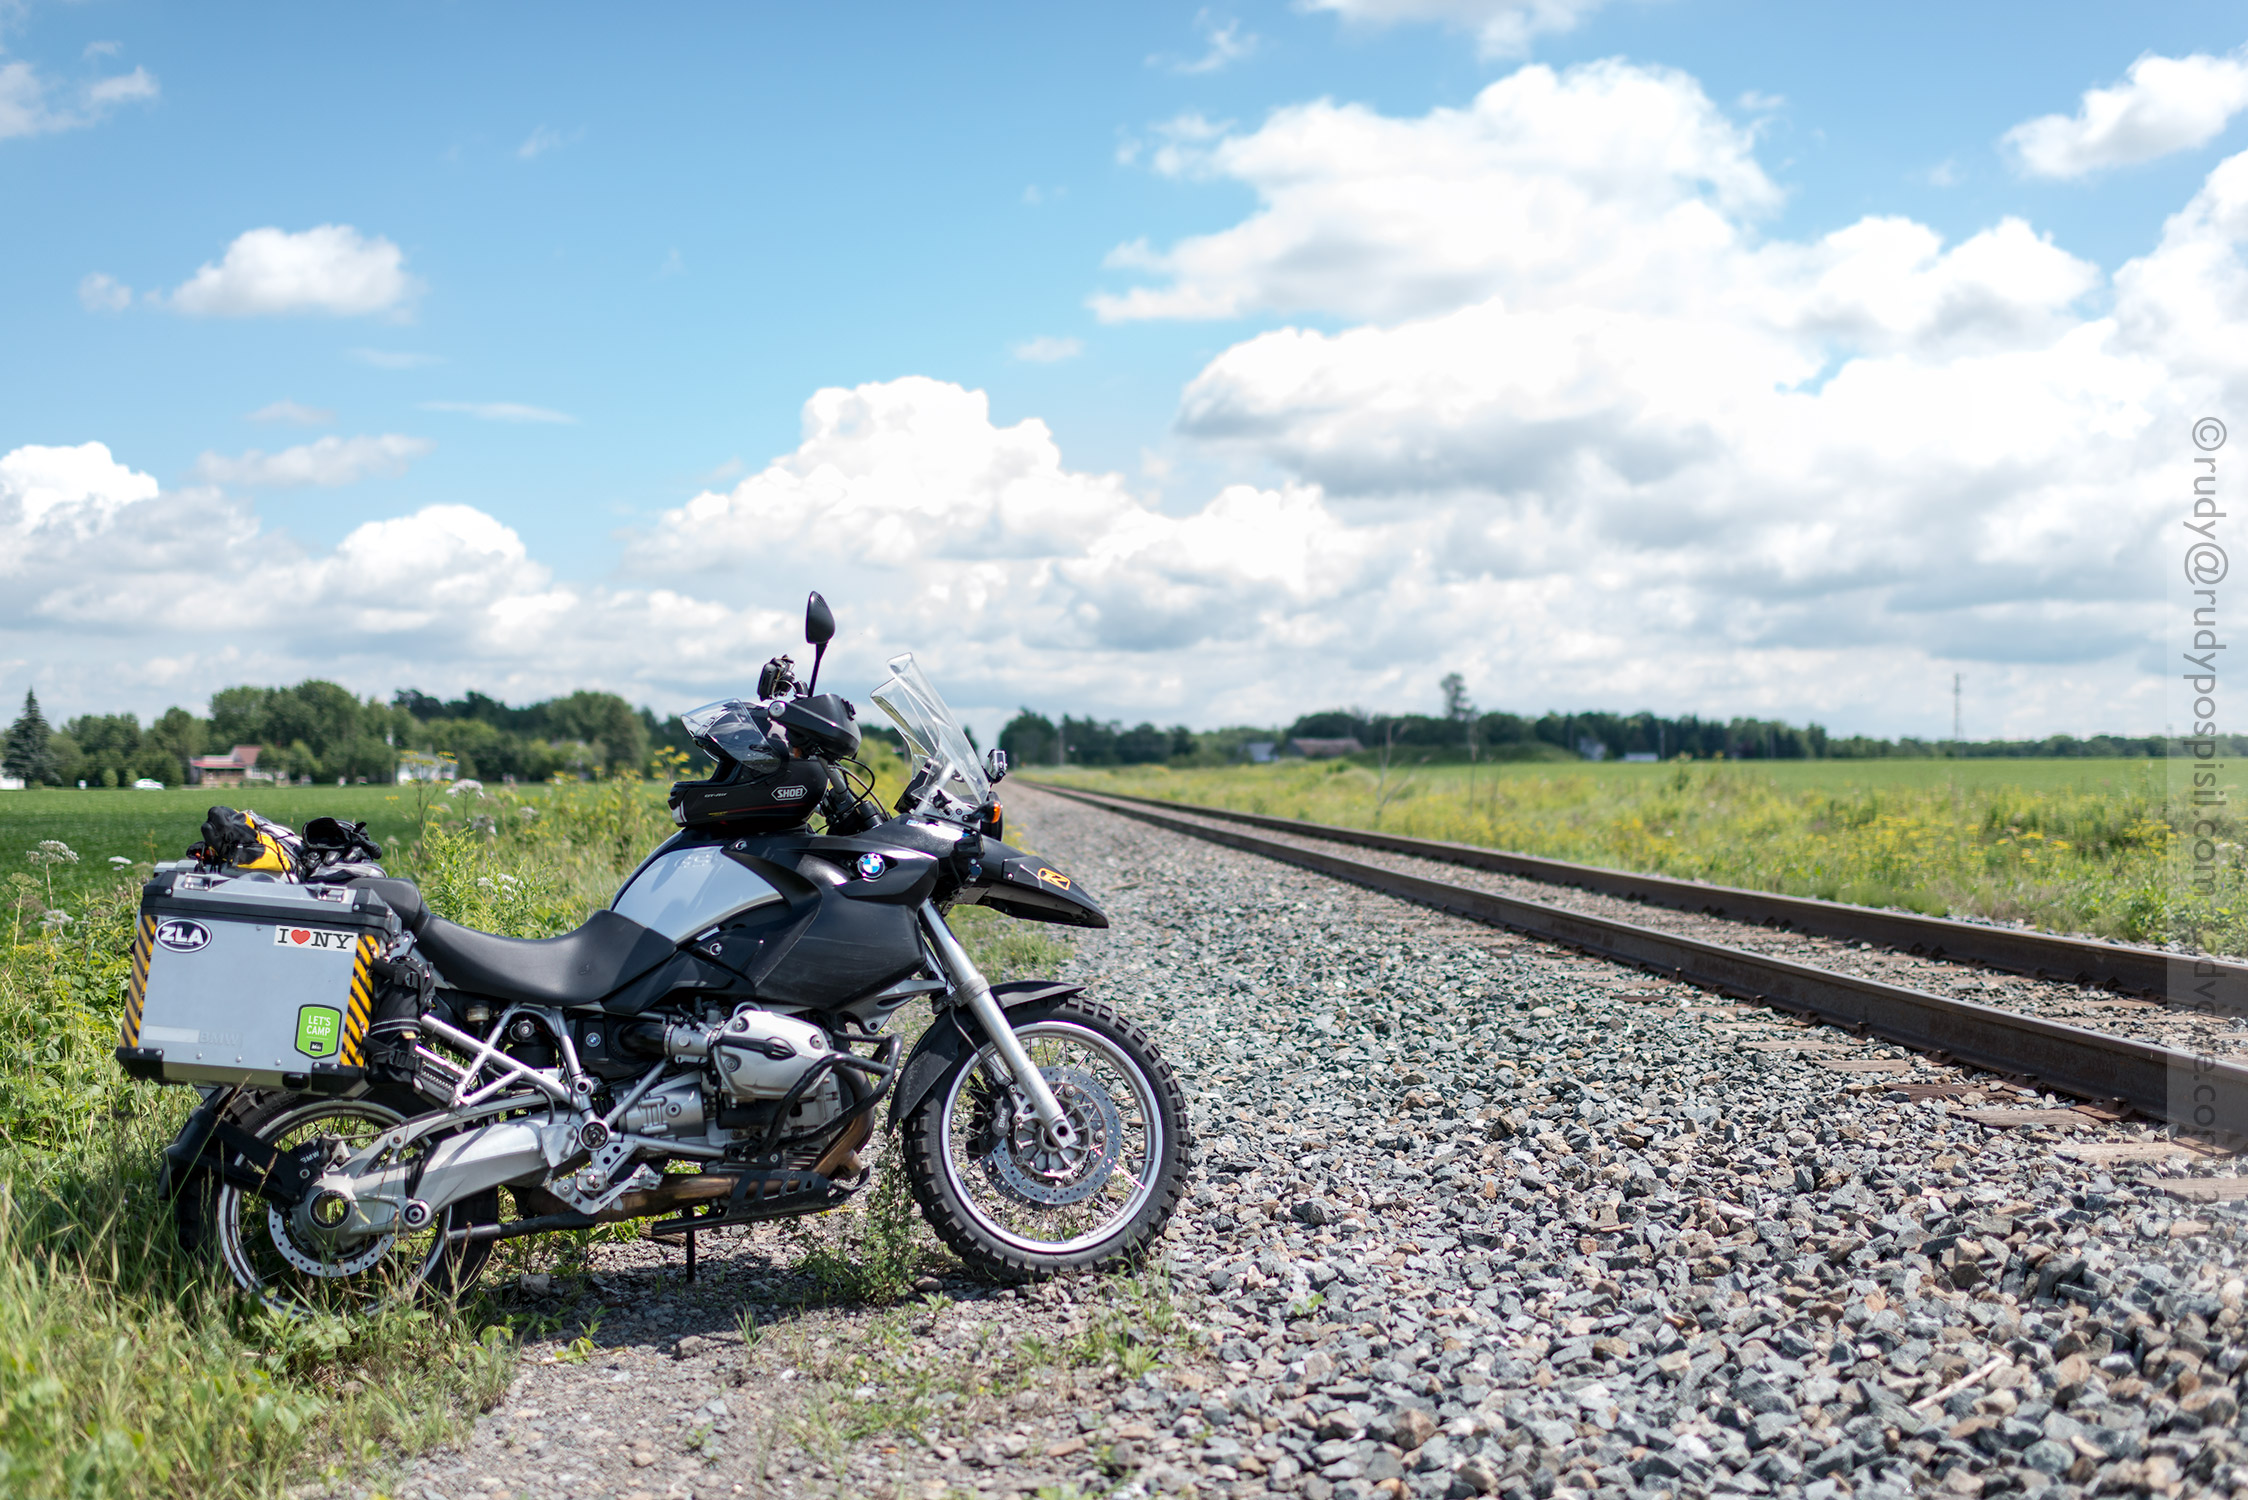 Riding along railroad tracks south of Montréal, Québec, Canada.